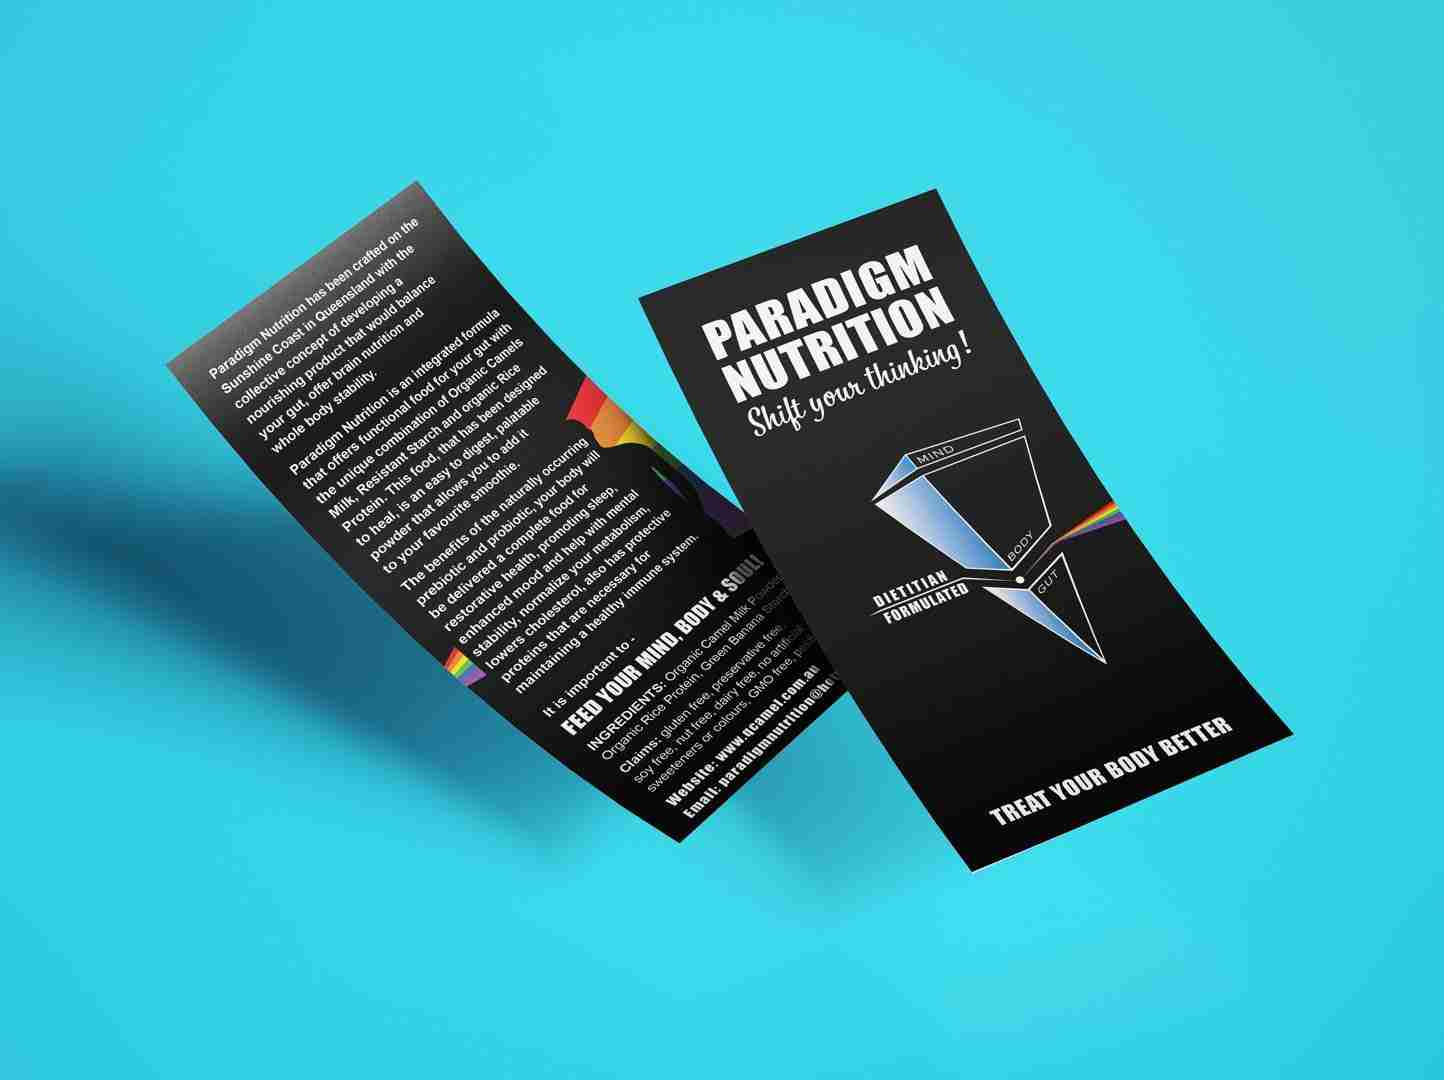 Paradigm Nutrition Flyer Mockup